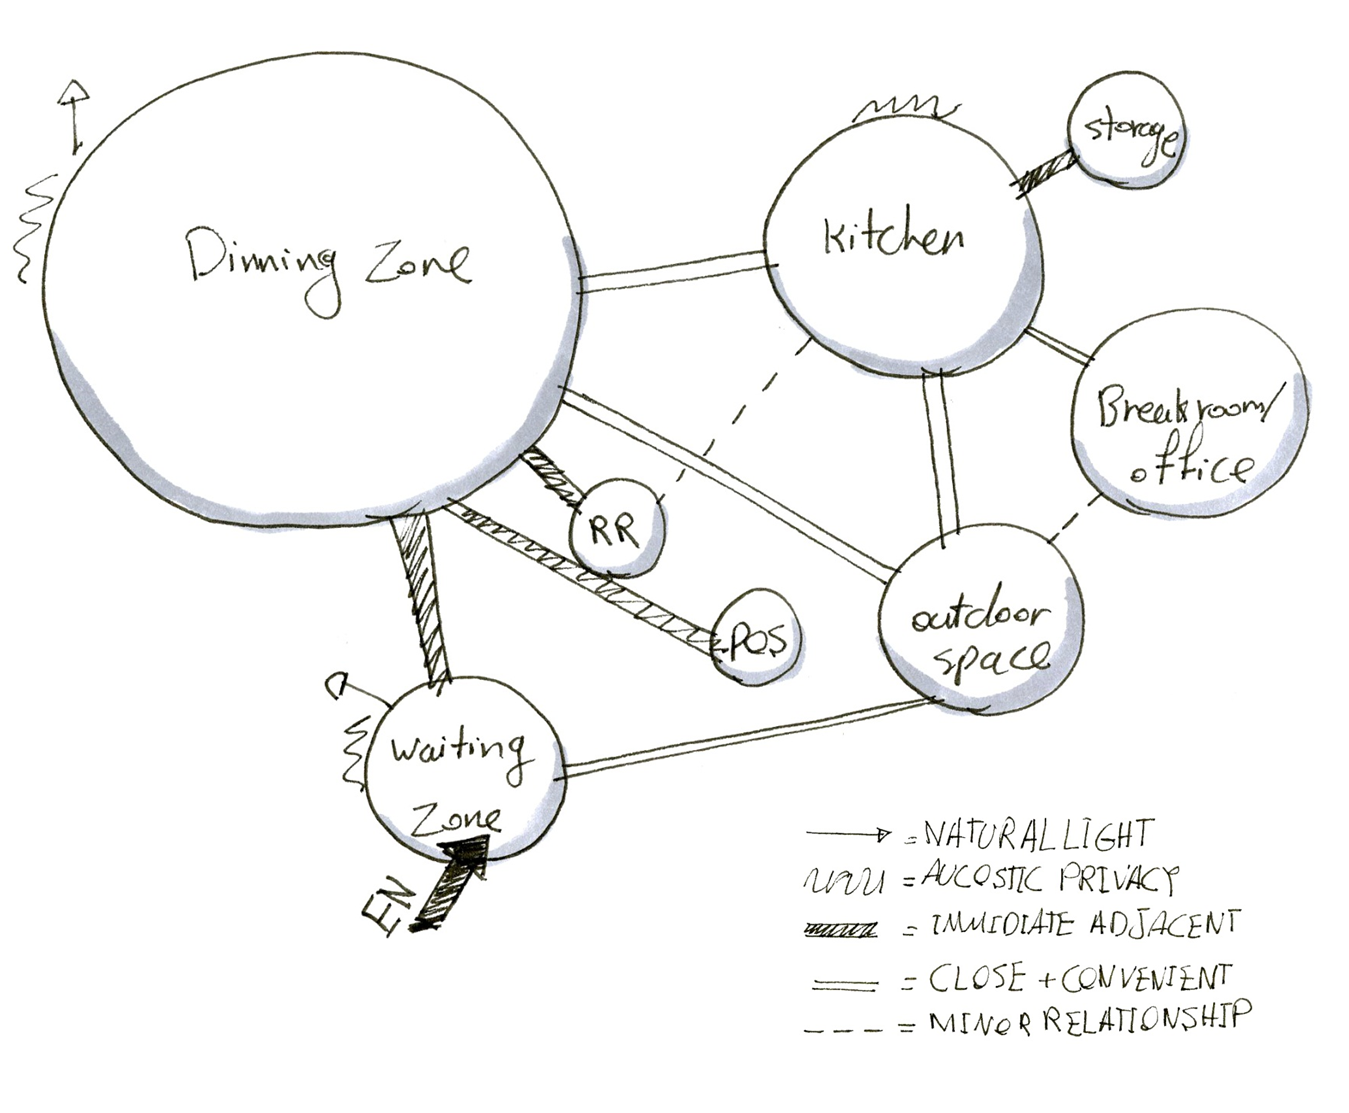 medium resolution of this bubble diagram for restaurant depicts various spaces in restaurant whcih includes arrival front of house and back of house